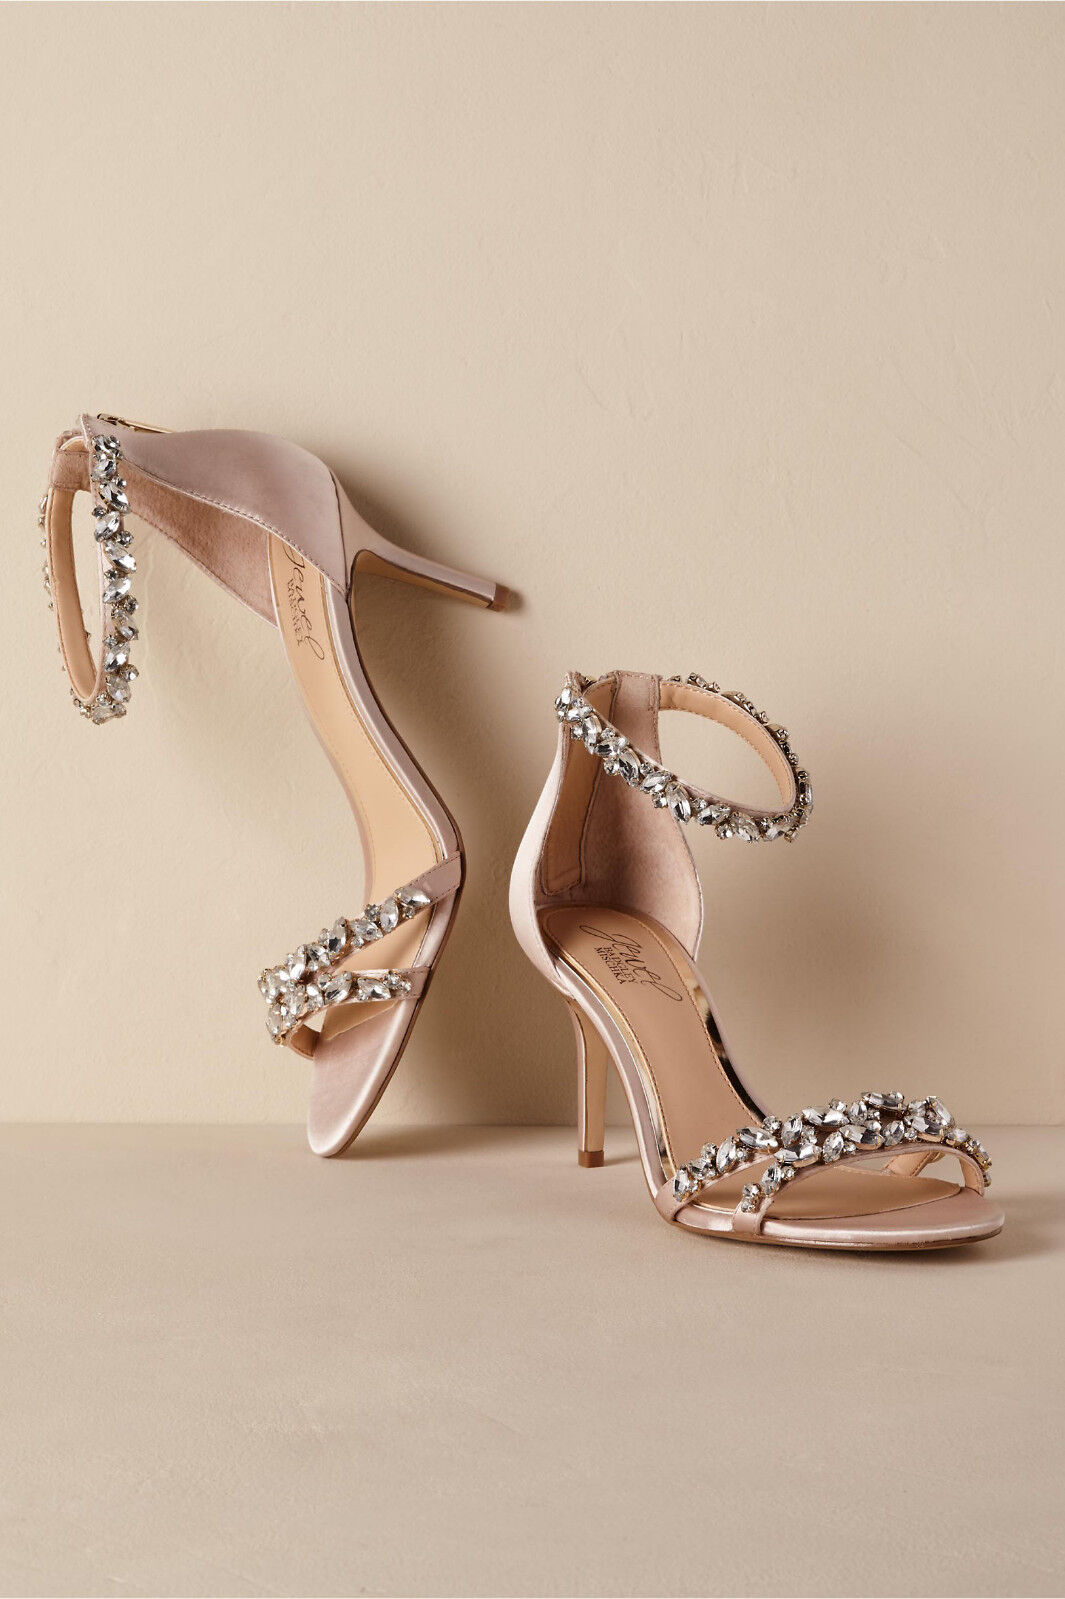 BADGLEY MISCHKA 8.5 SATIN CREAM CREAM CREAM ANKLE STRAP CRYSTALS ZIPPER BACK CAROLINE  110 bf0e8c